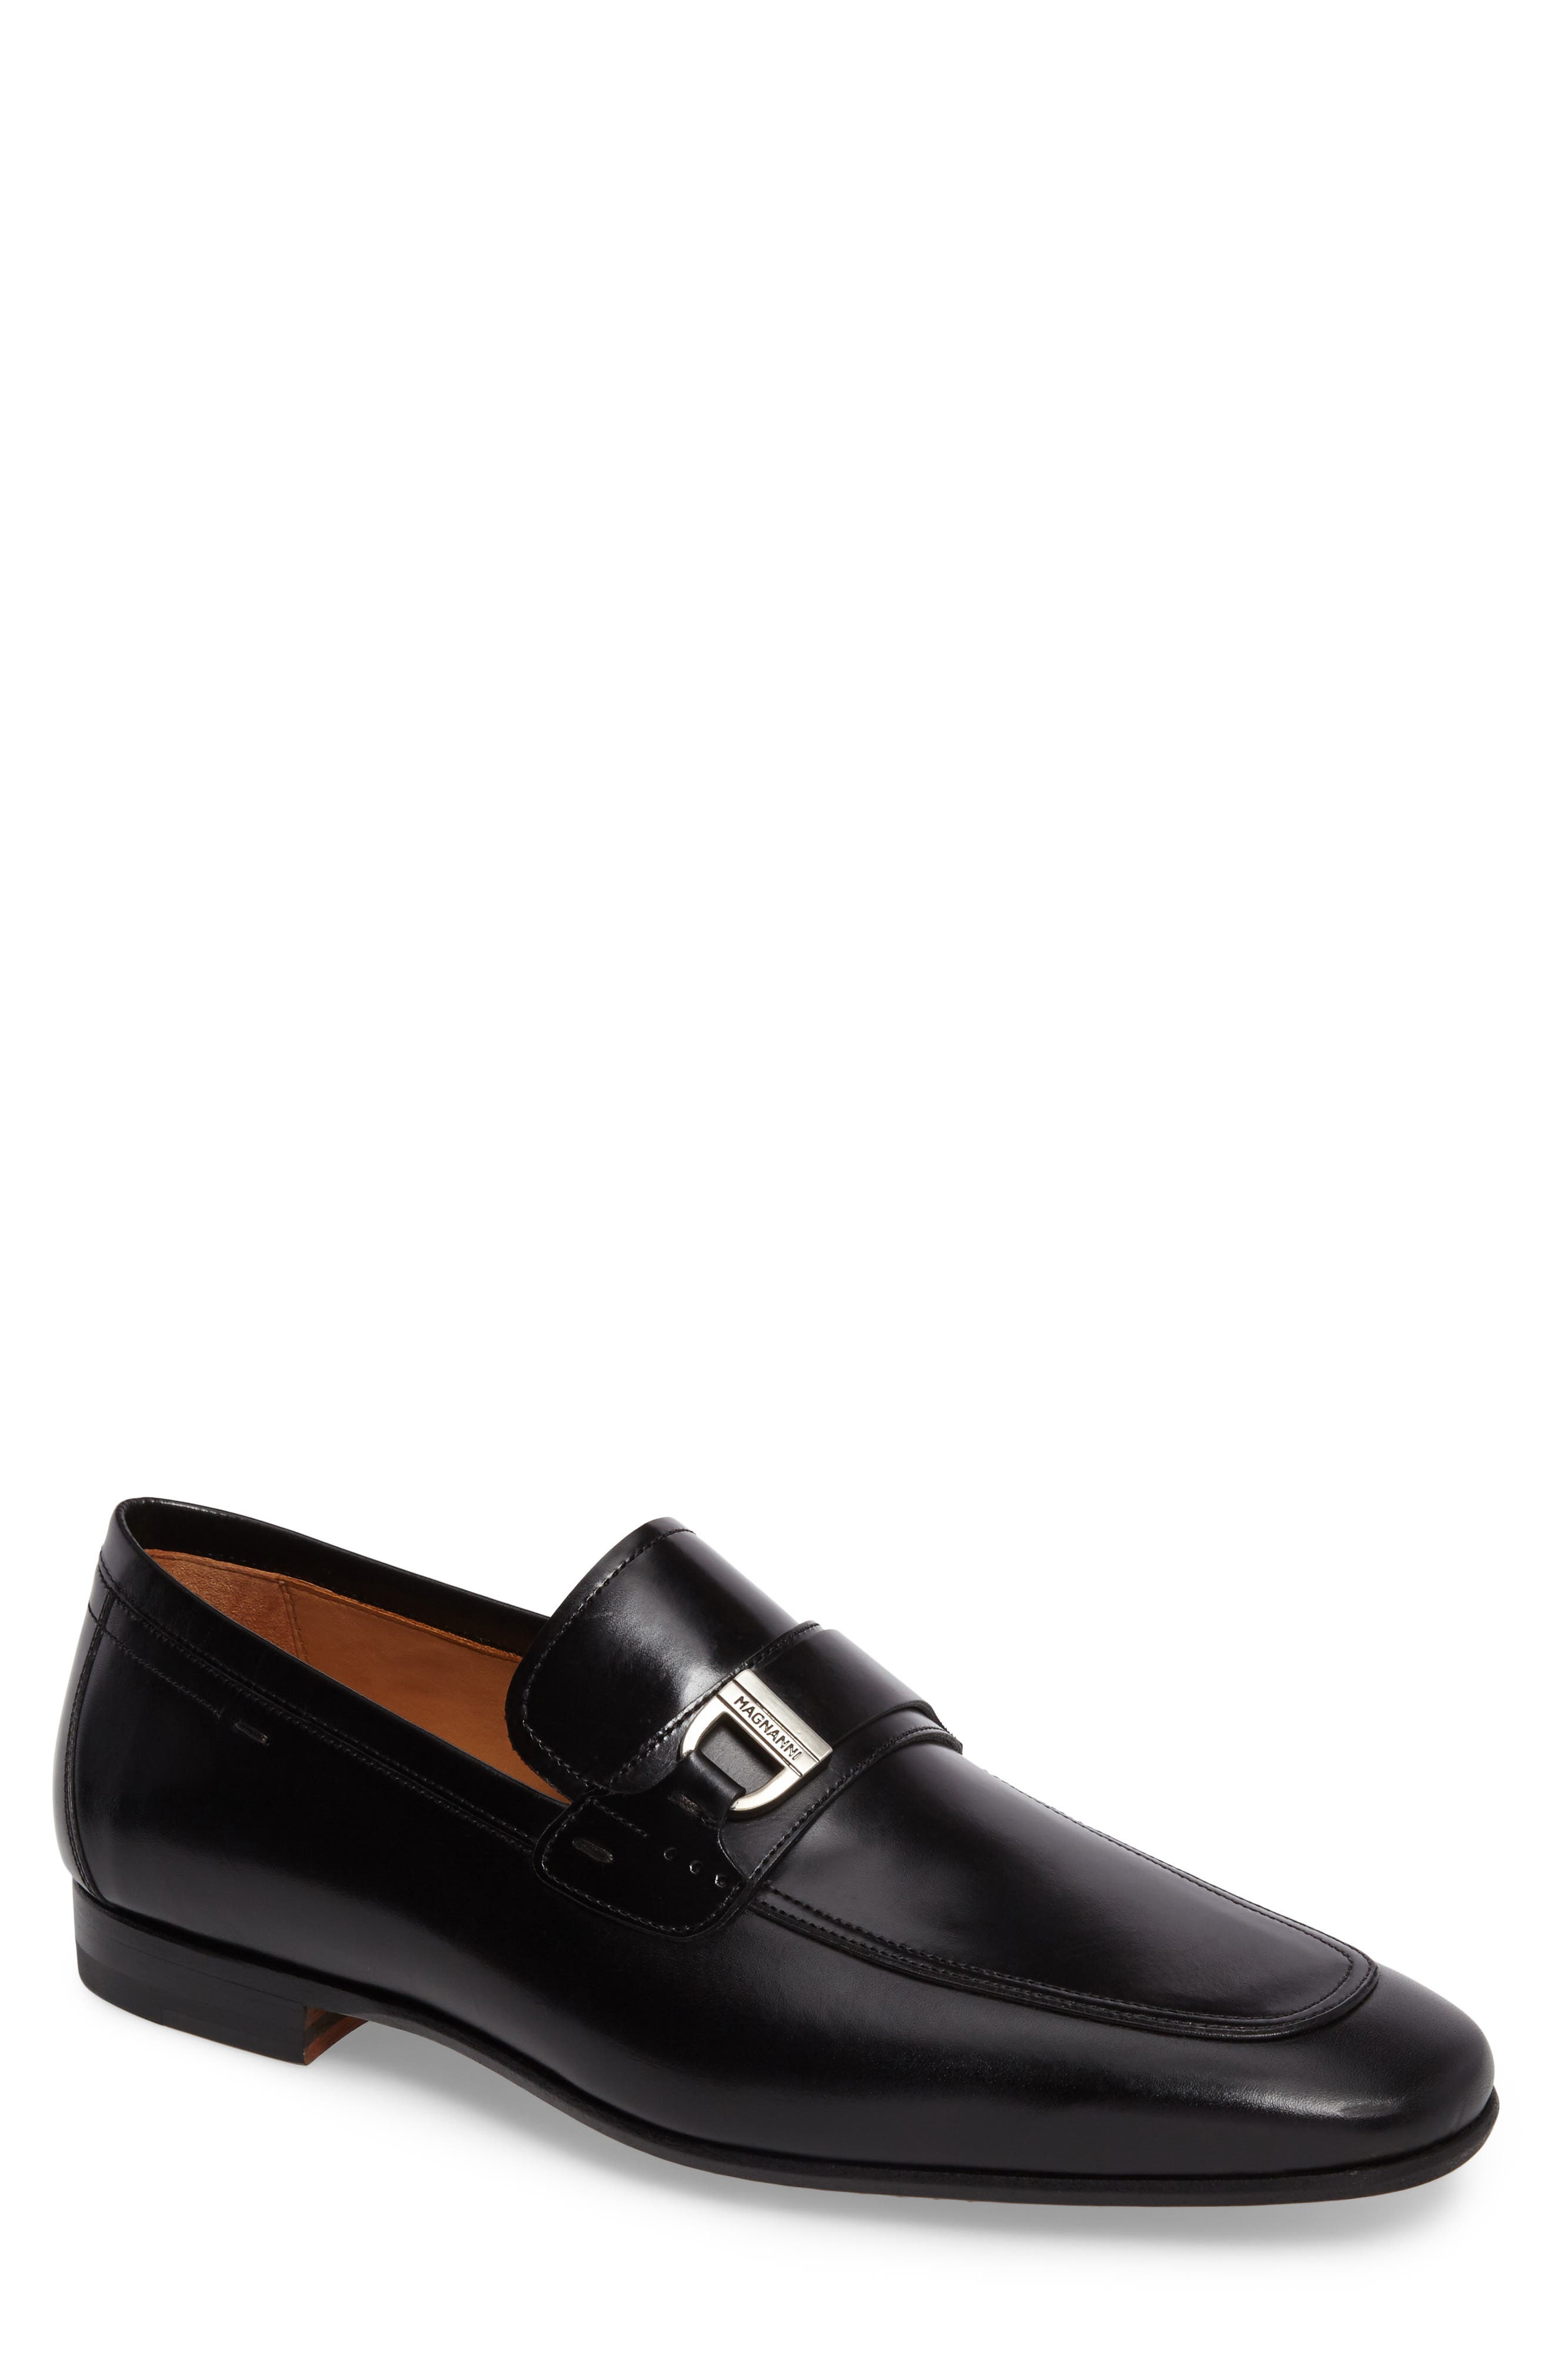 Rico Bit Venetian Loafer,                         Main,                         color, 001